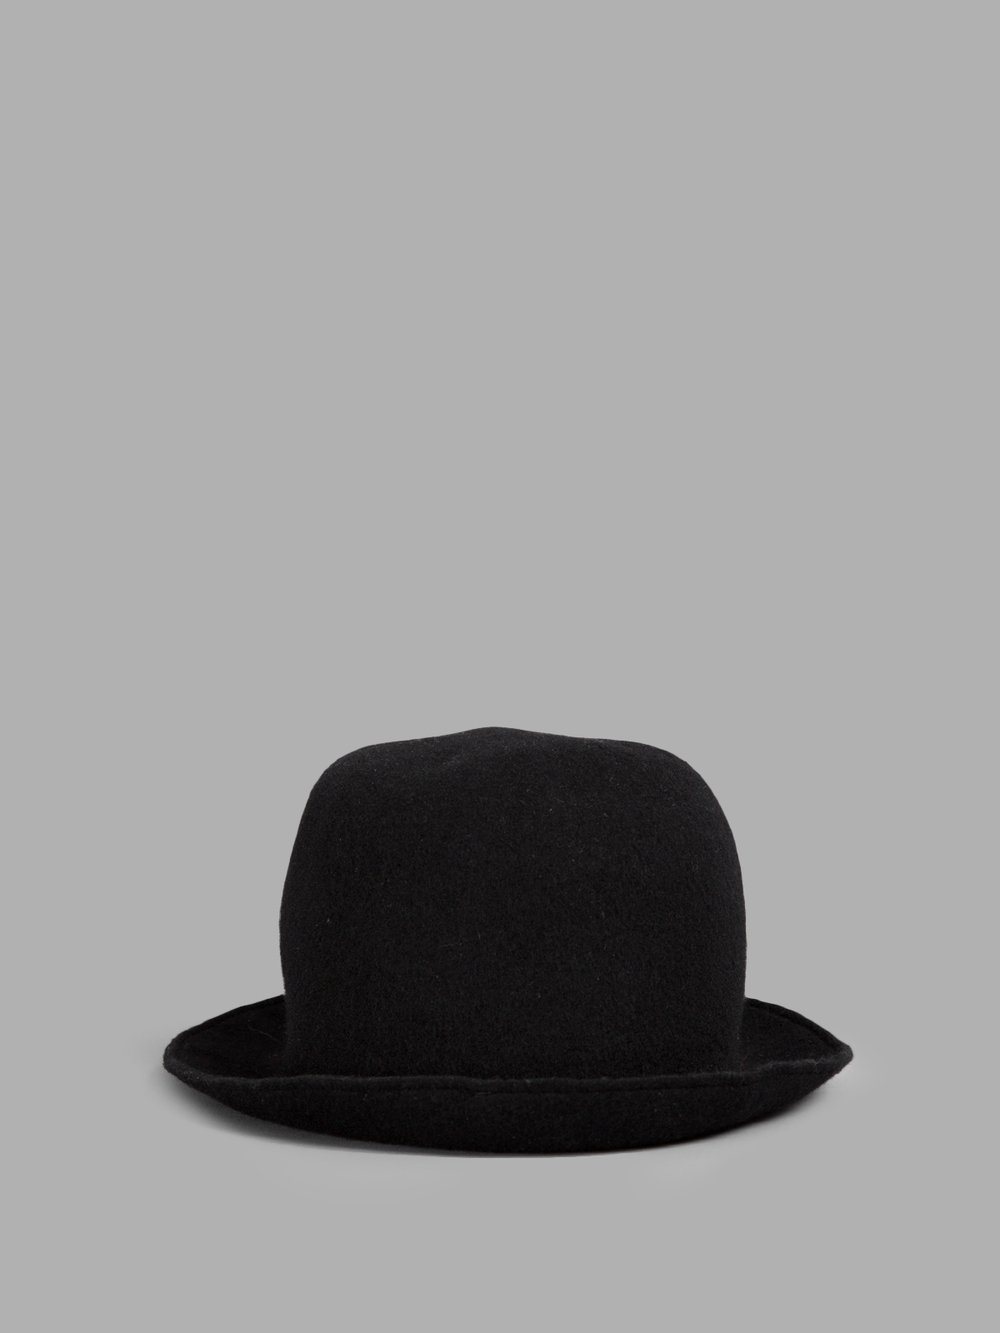 SCHA BLACK HAT